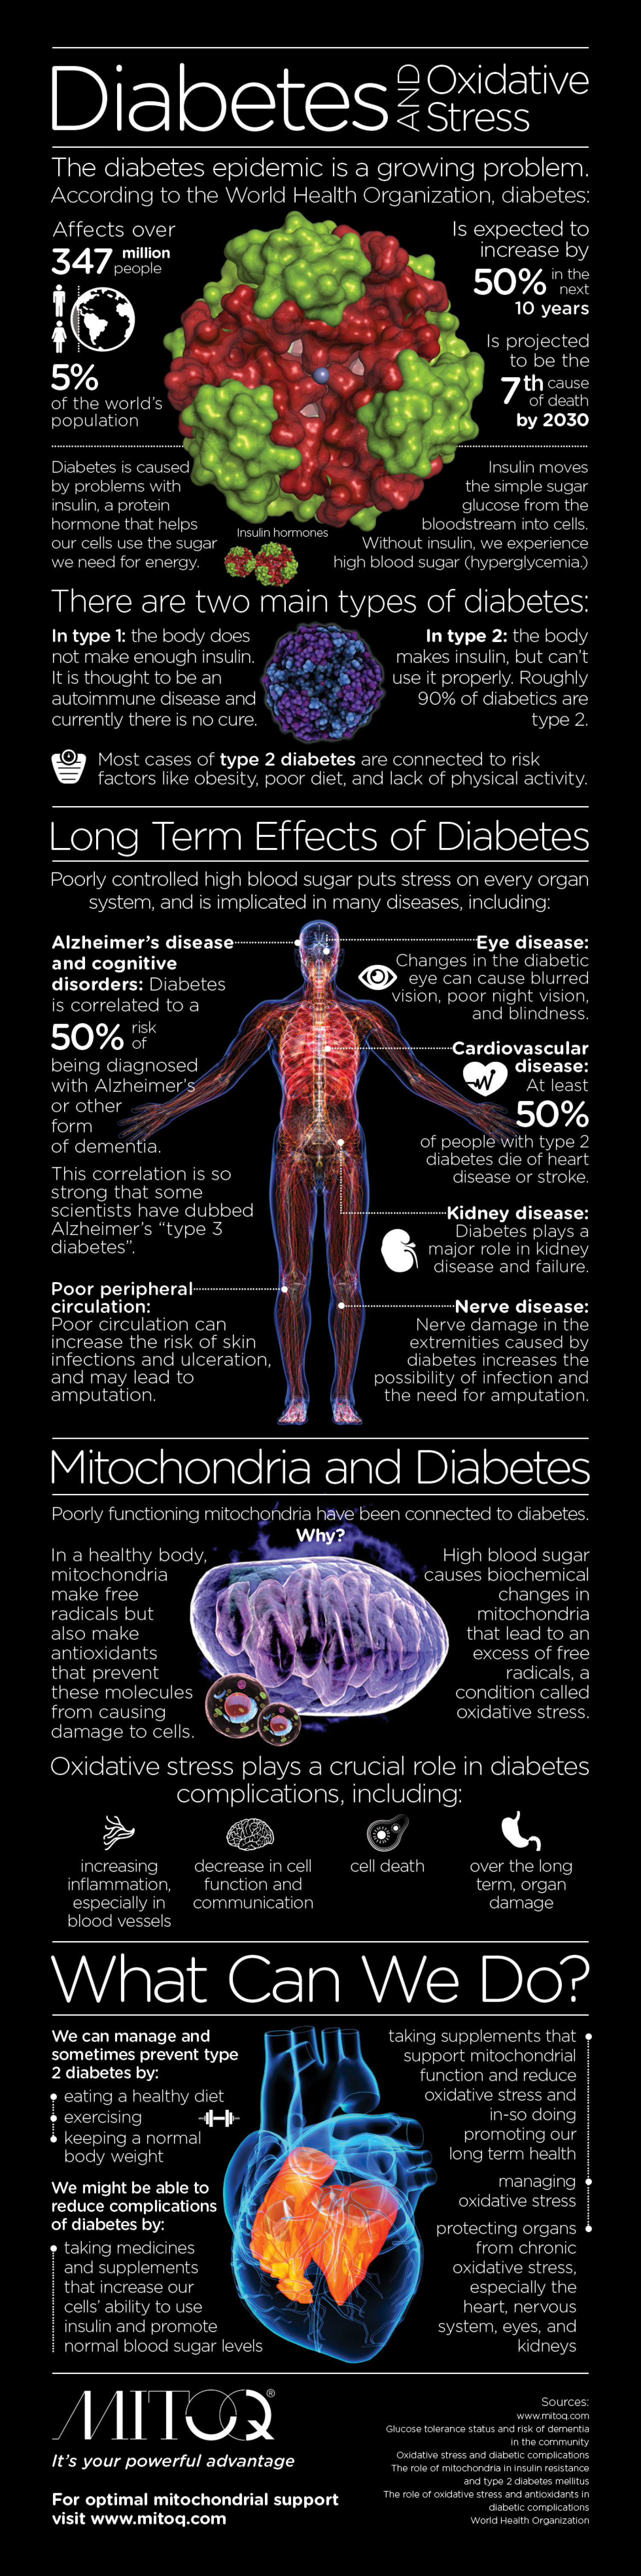 Diabetes and Oxidative Stress Infographic